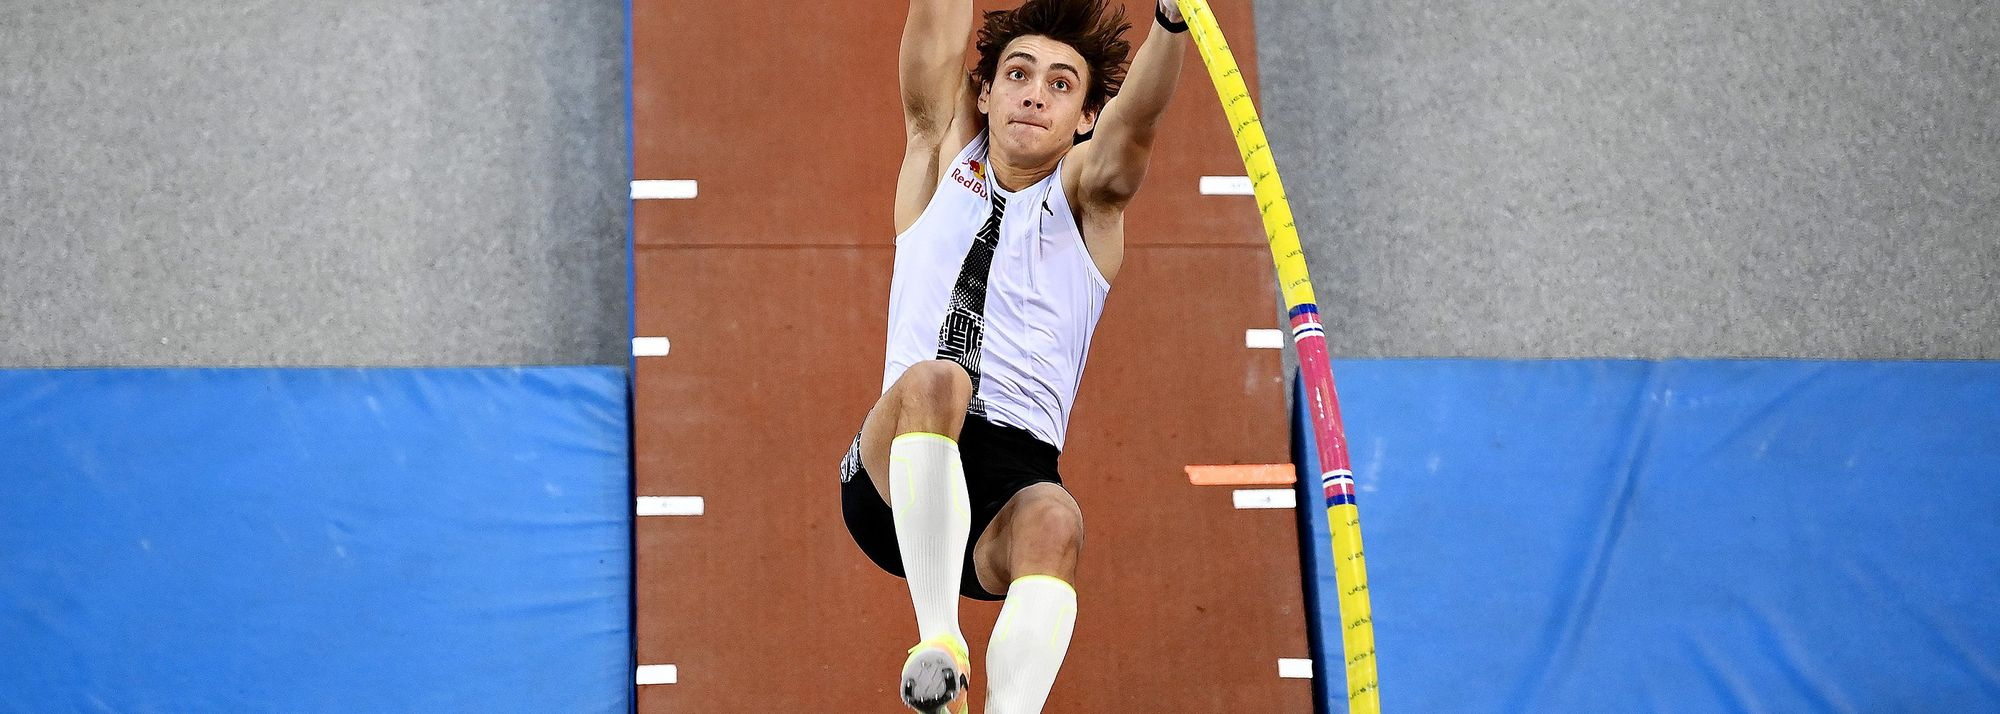 Fourth-best vault of his career